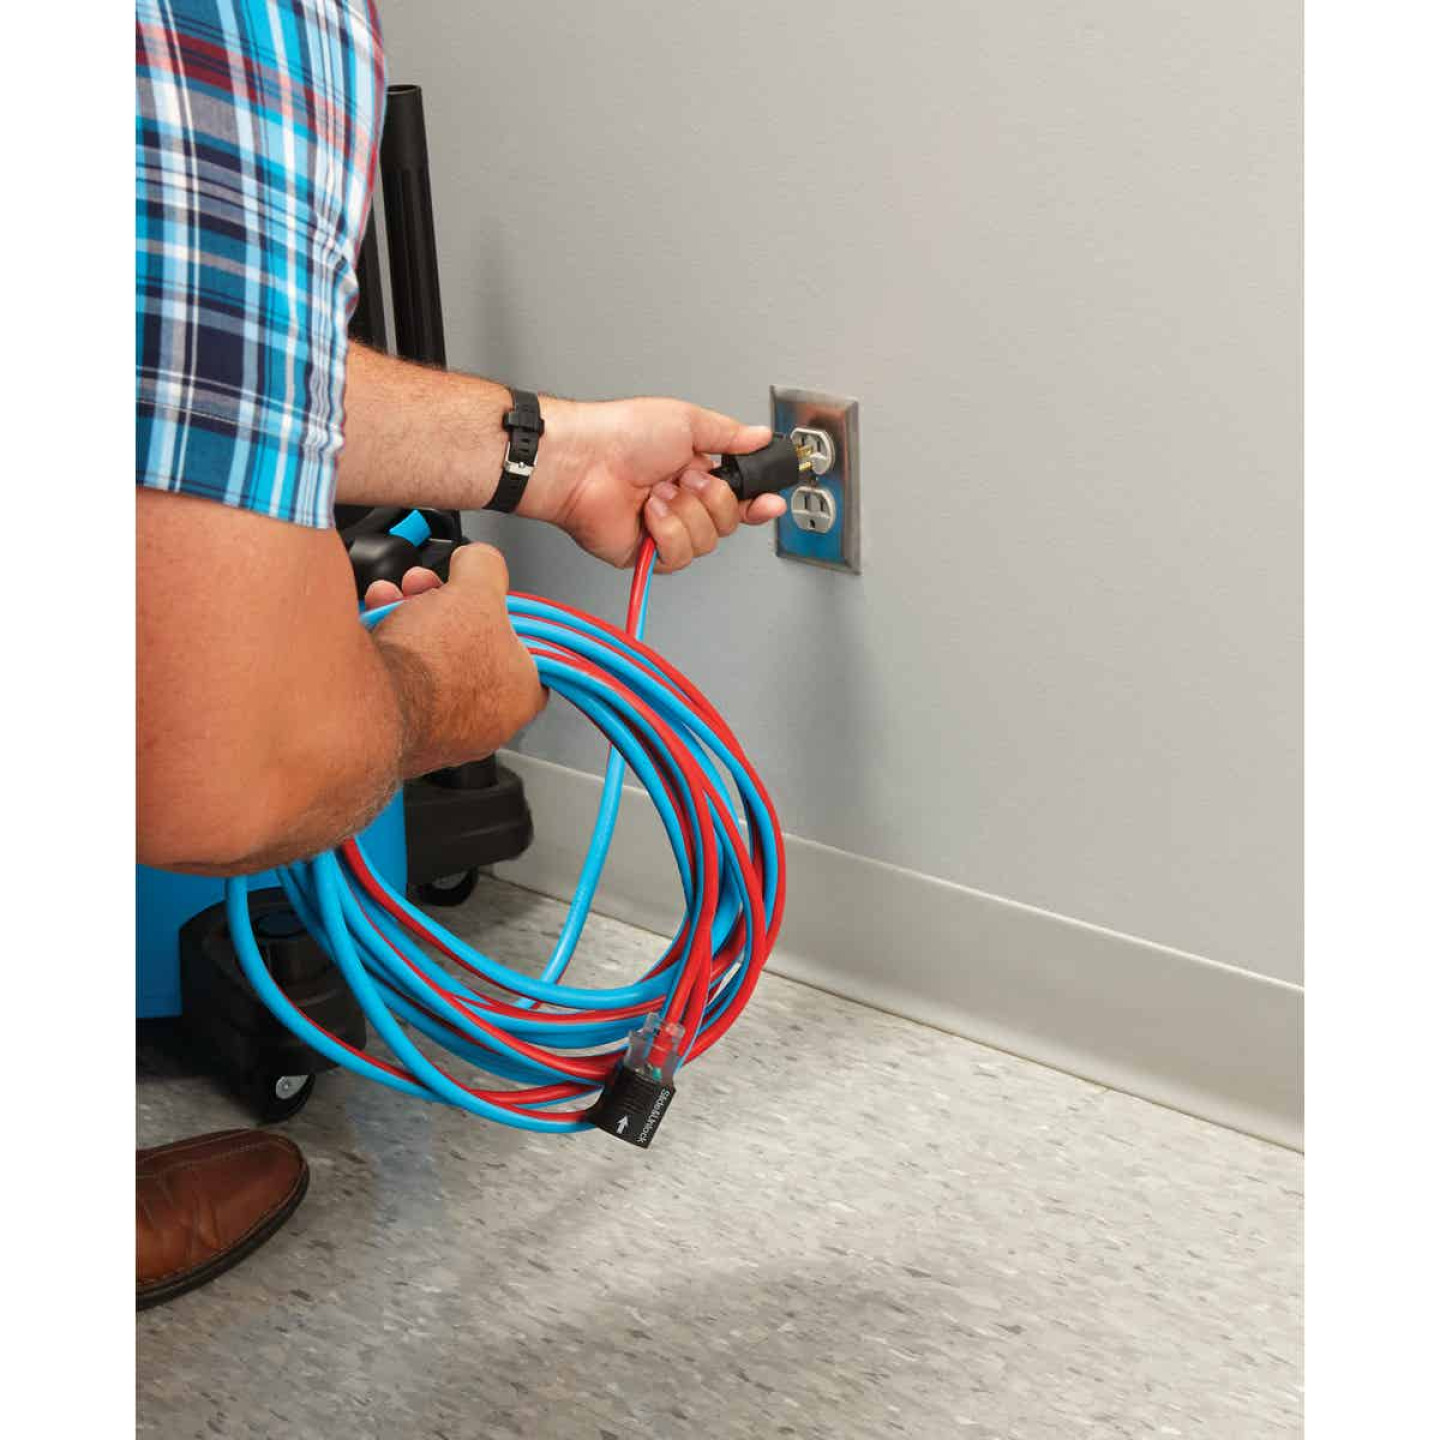 Channellock 25 Ft. 14/3 Extension Cord Image 3